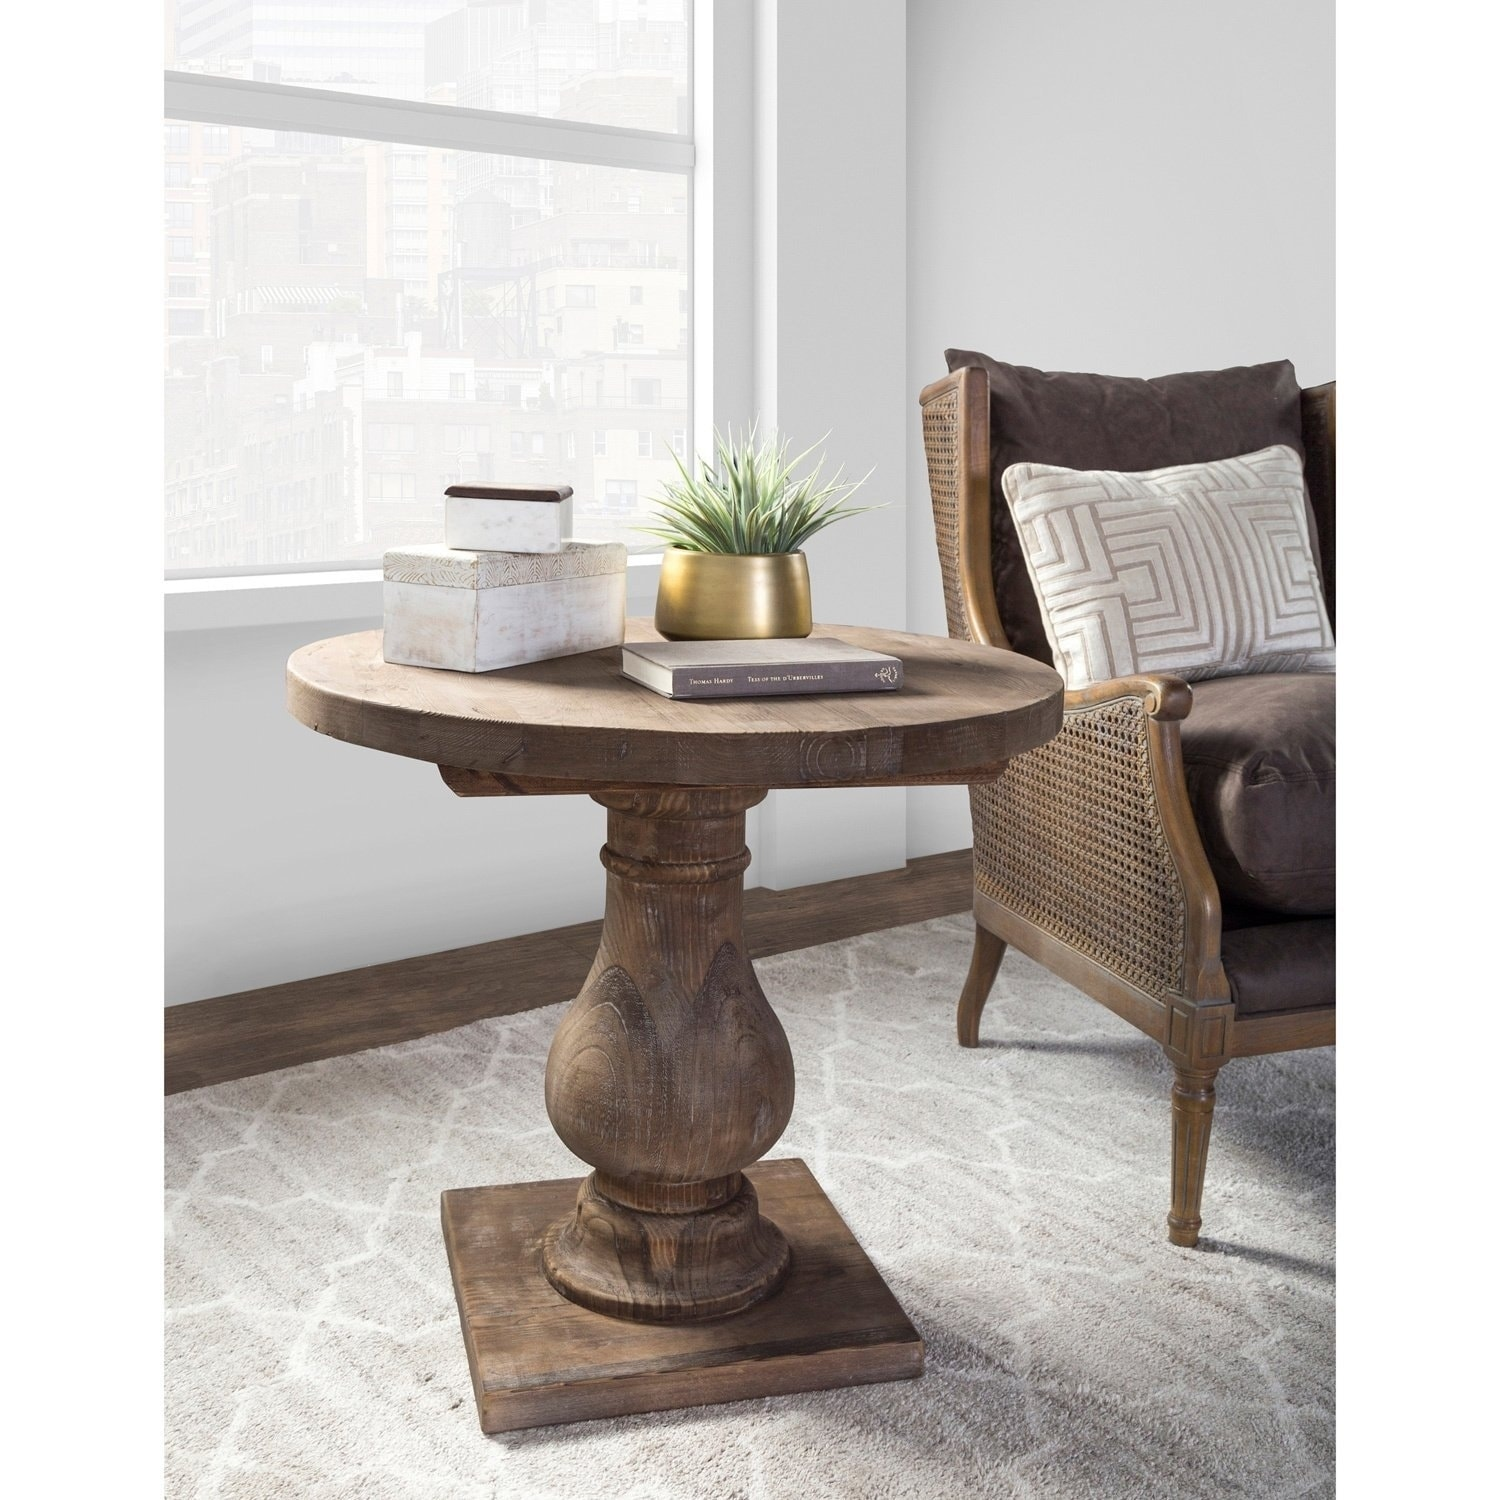 Prime Carolina Reclaimed Wood Round End Table By Kosas Home Gmtry Best Dining Table And Chair Ideas Images Gmtryco